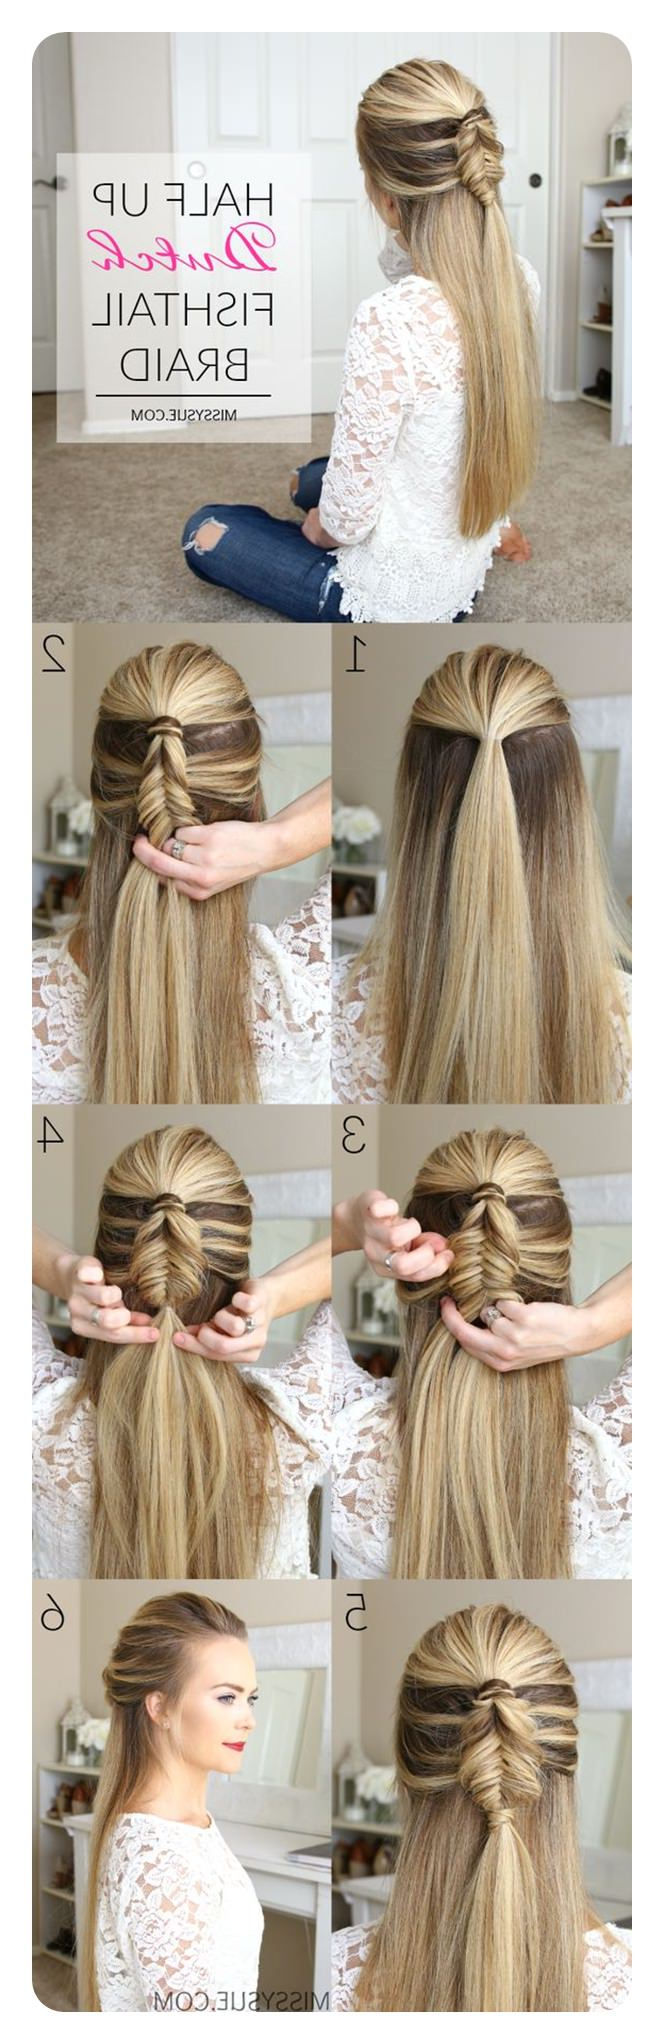 104 Fishtail Braids Hairstyles That Turn Heads Inside Most Recently Released Fishtail Side Braided Hairstyles (View 19 of 20)